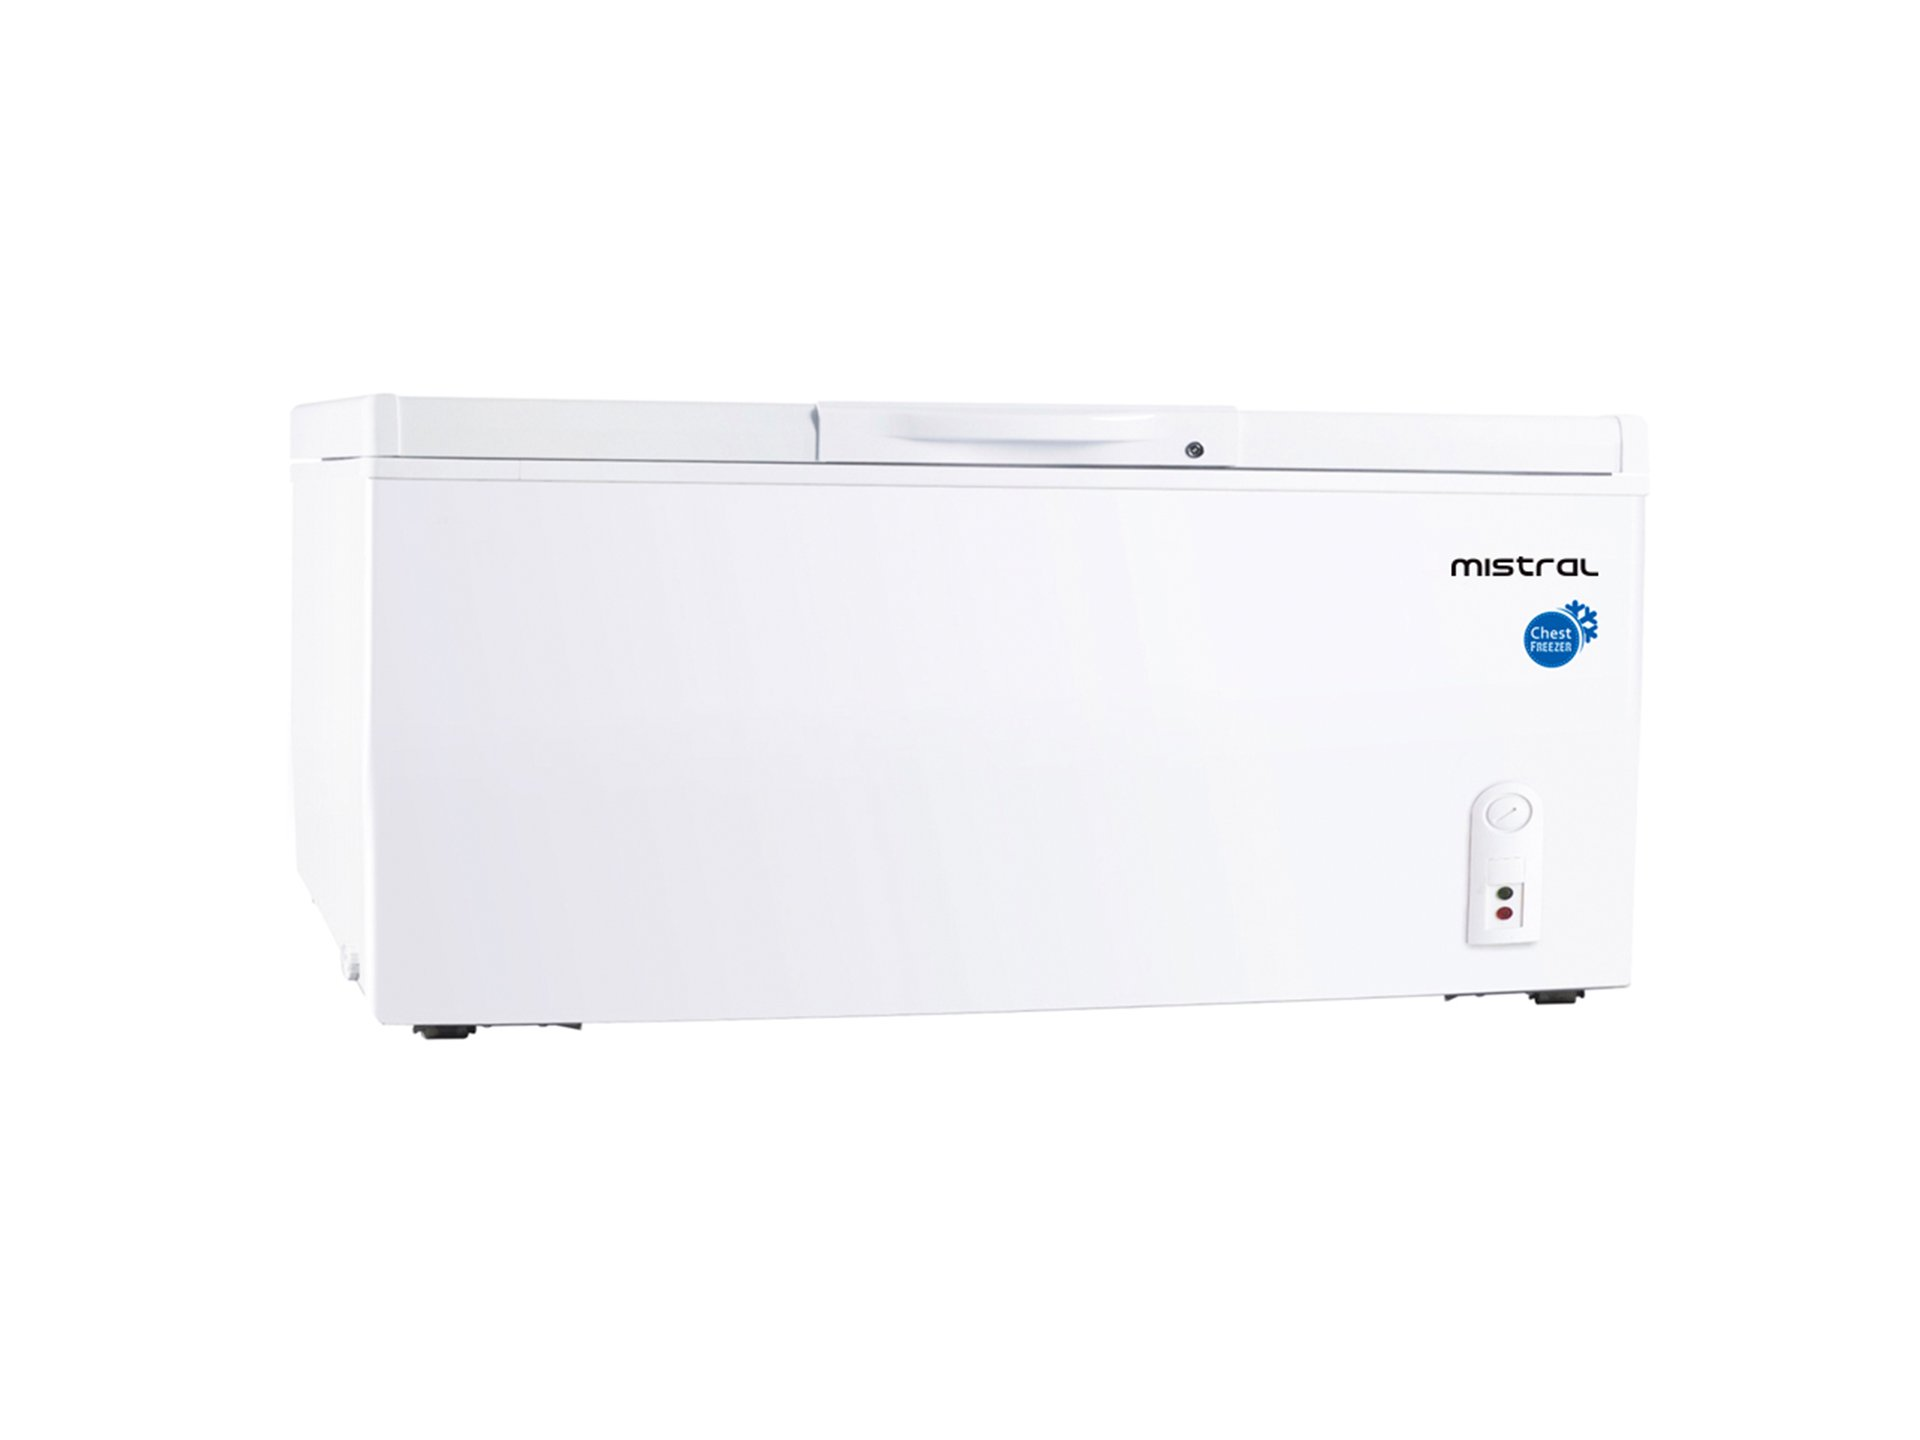 Yeobuild HomeStore Mistral Chest Freezer MFC423A